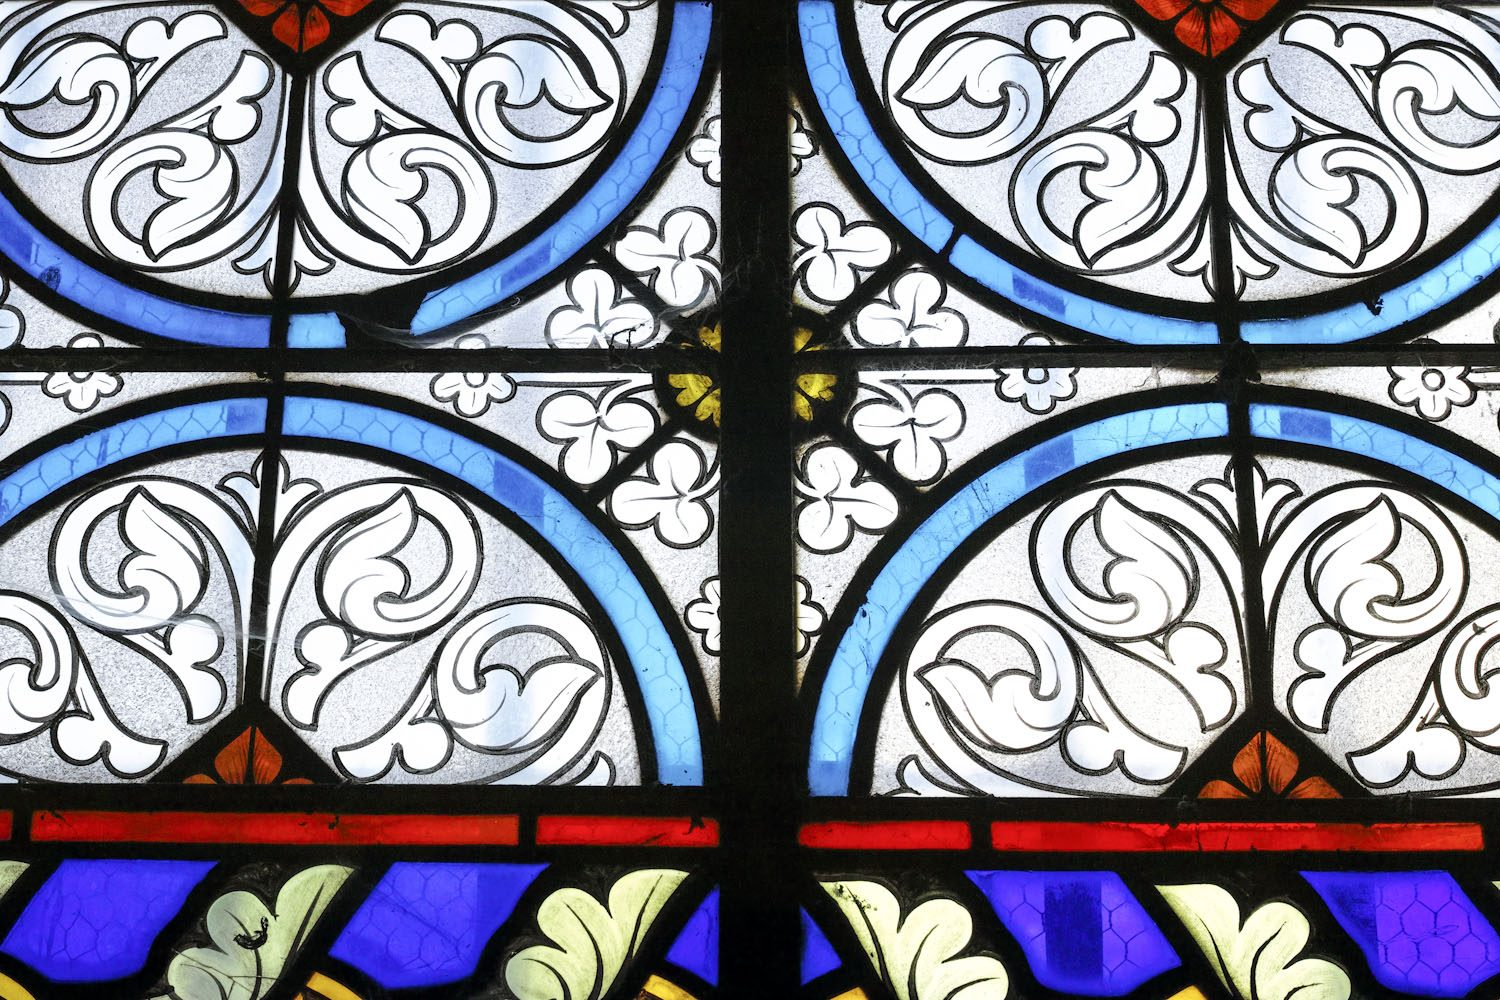 stained_glass_windows_cantal_france_finland_thevoyageur003